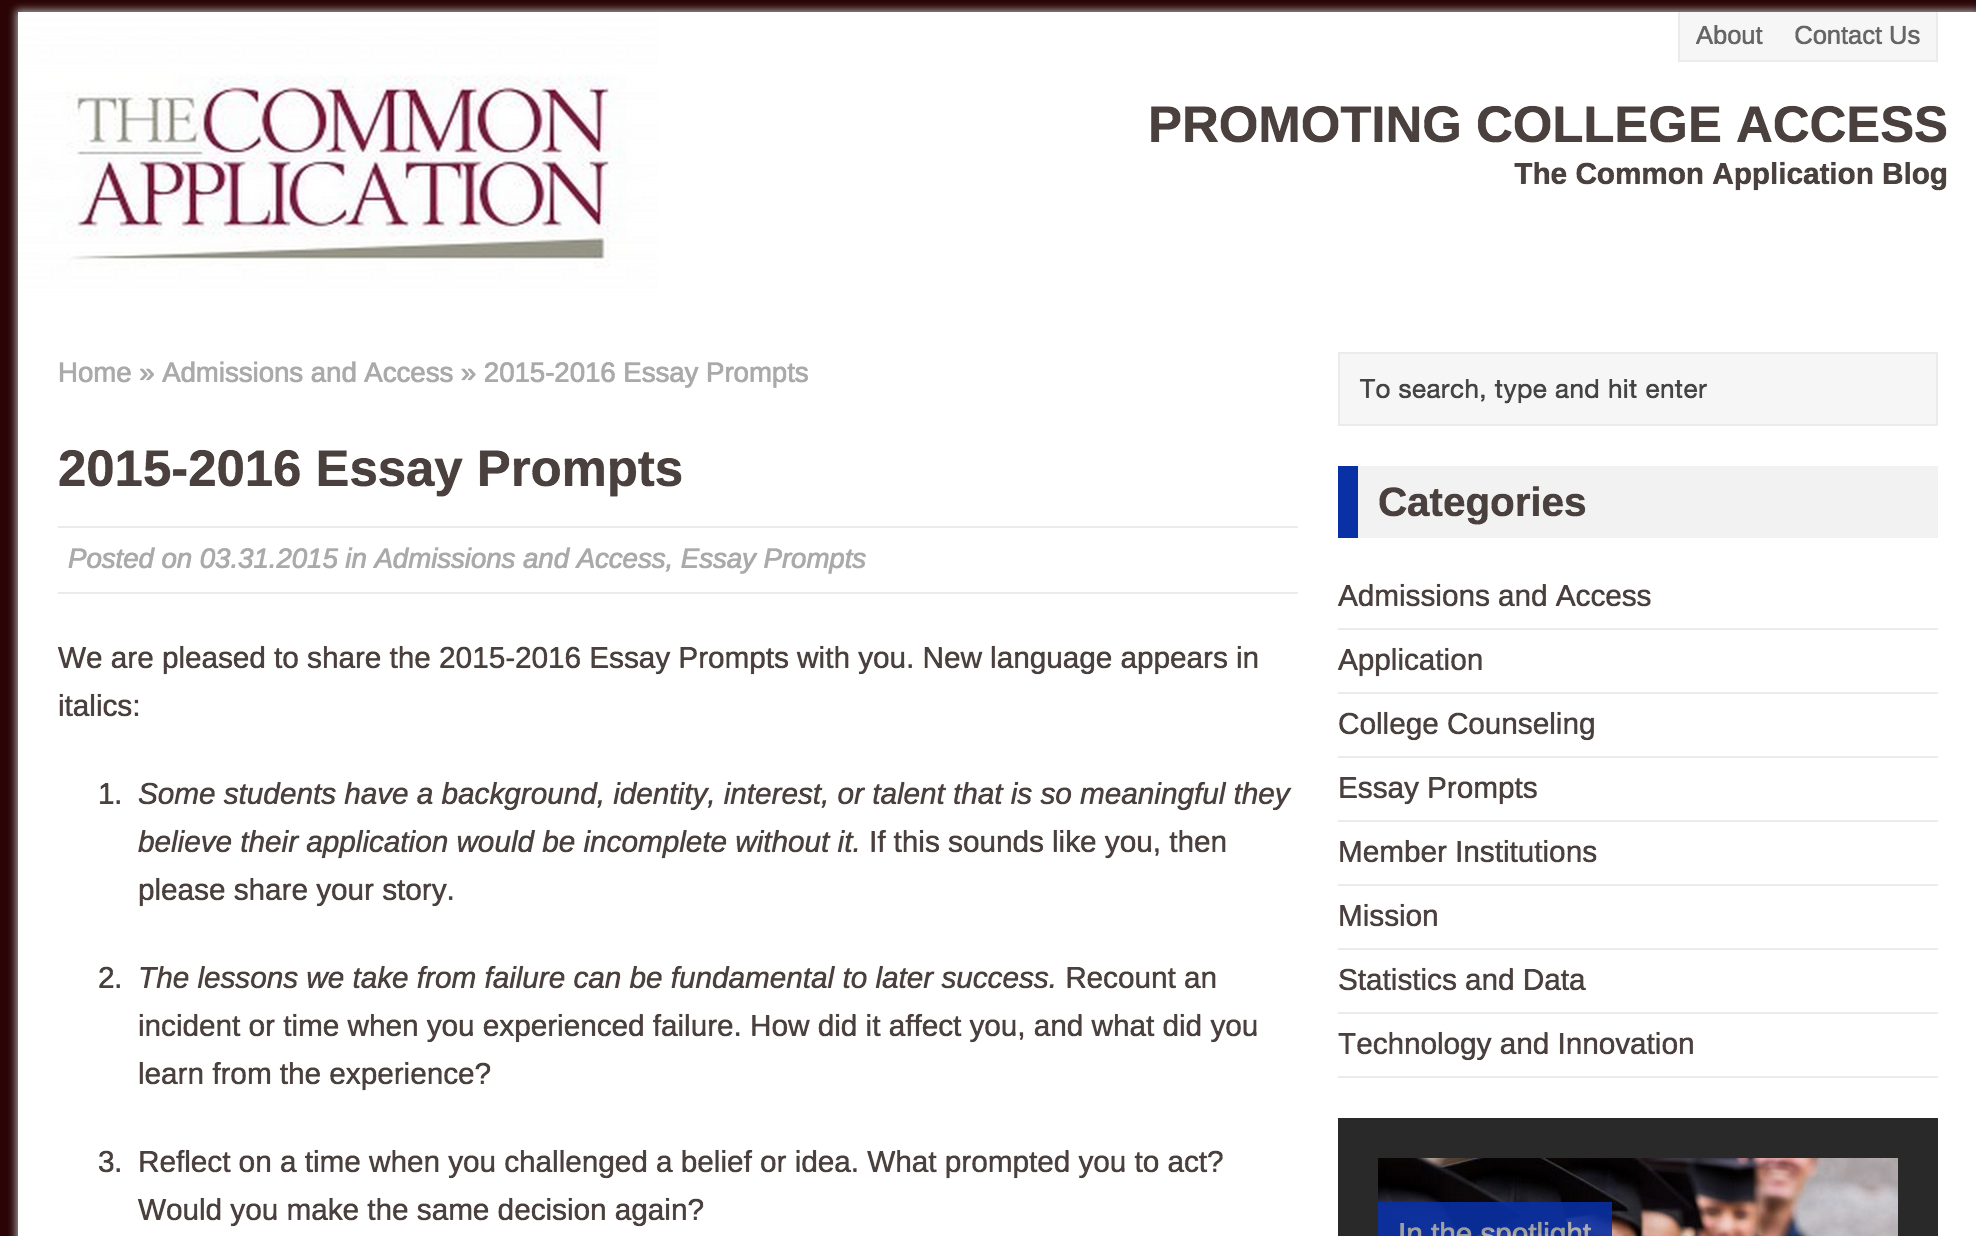 001 Screen Shot At Pm Common Application Essay Prompts Imposing 2017 App Examples Prompt 6 2015 Full